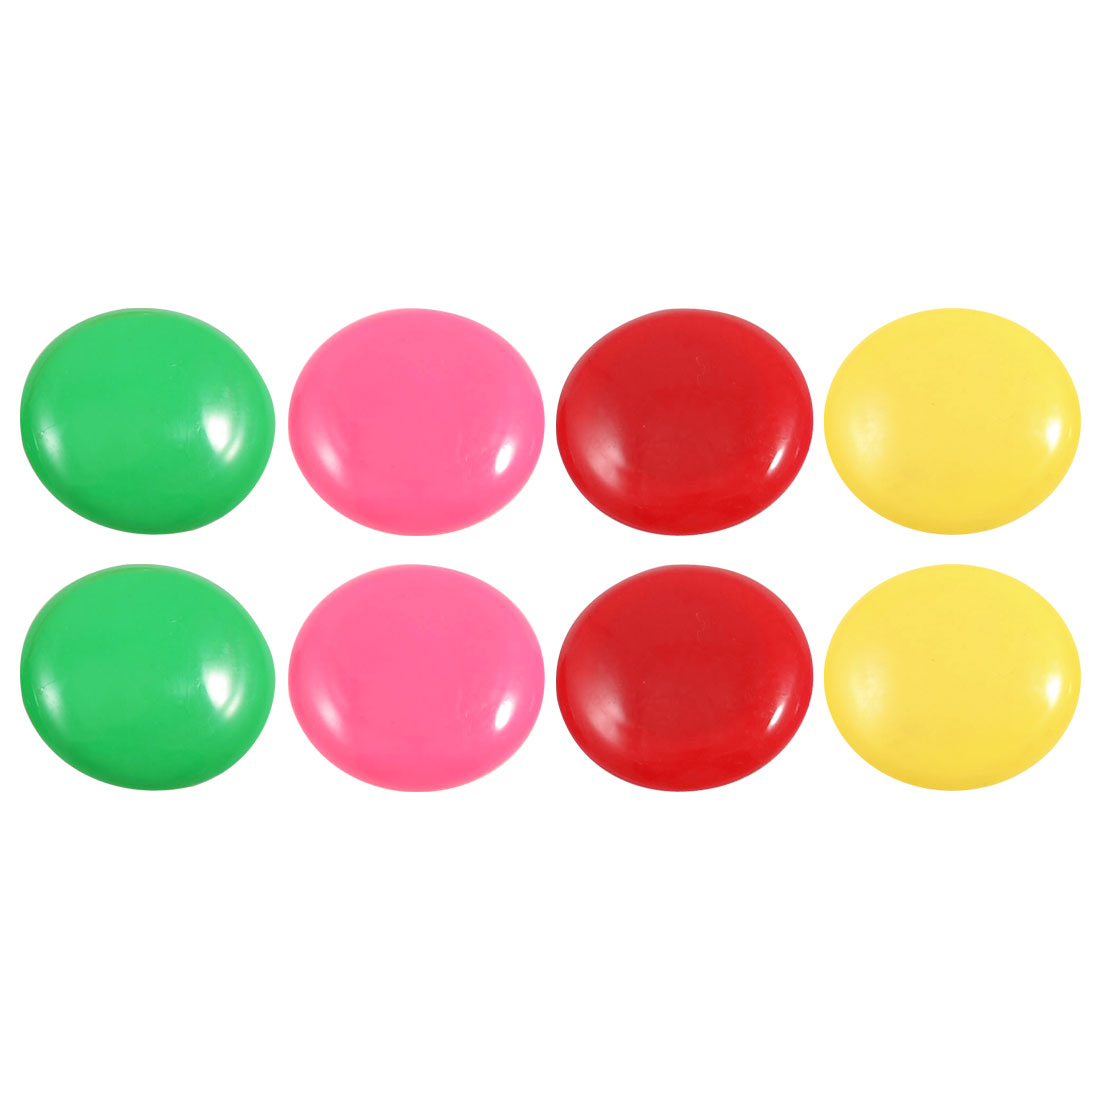 8 Pcs Assorted Colors Plastic White Board Refrigerator Magnets 1.6""